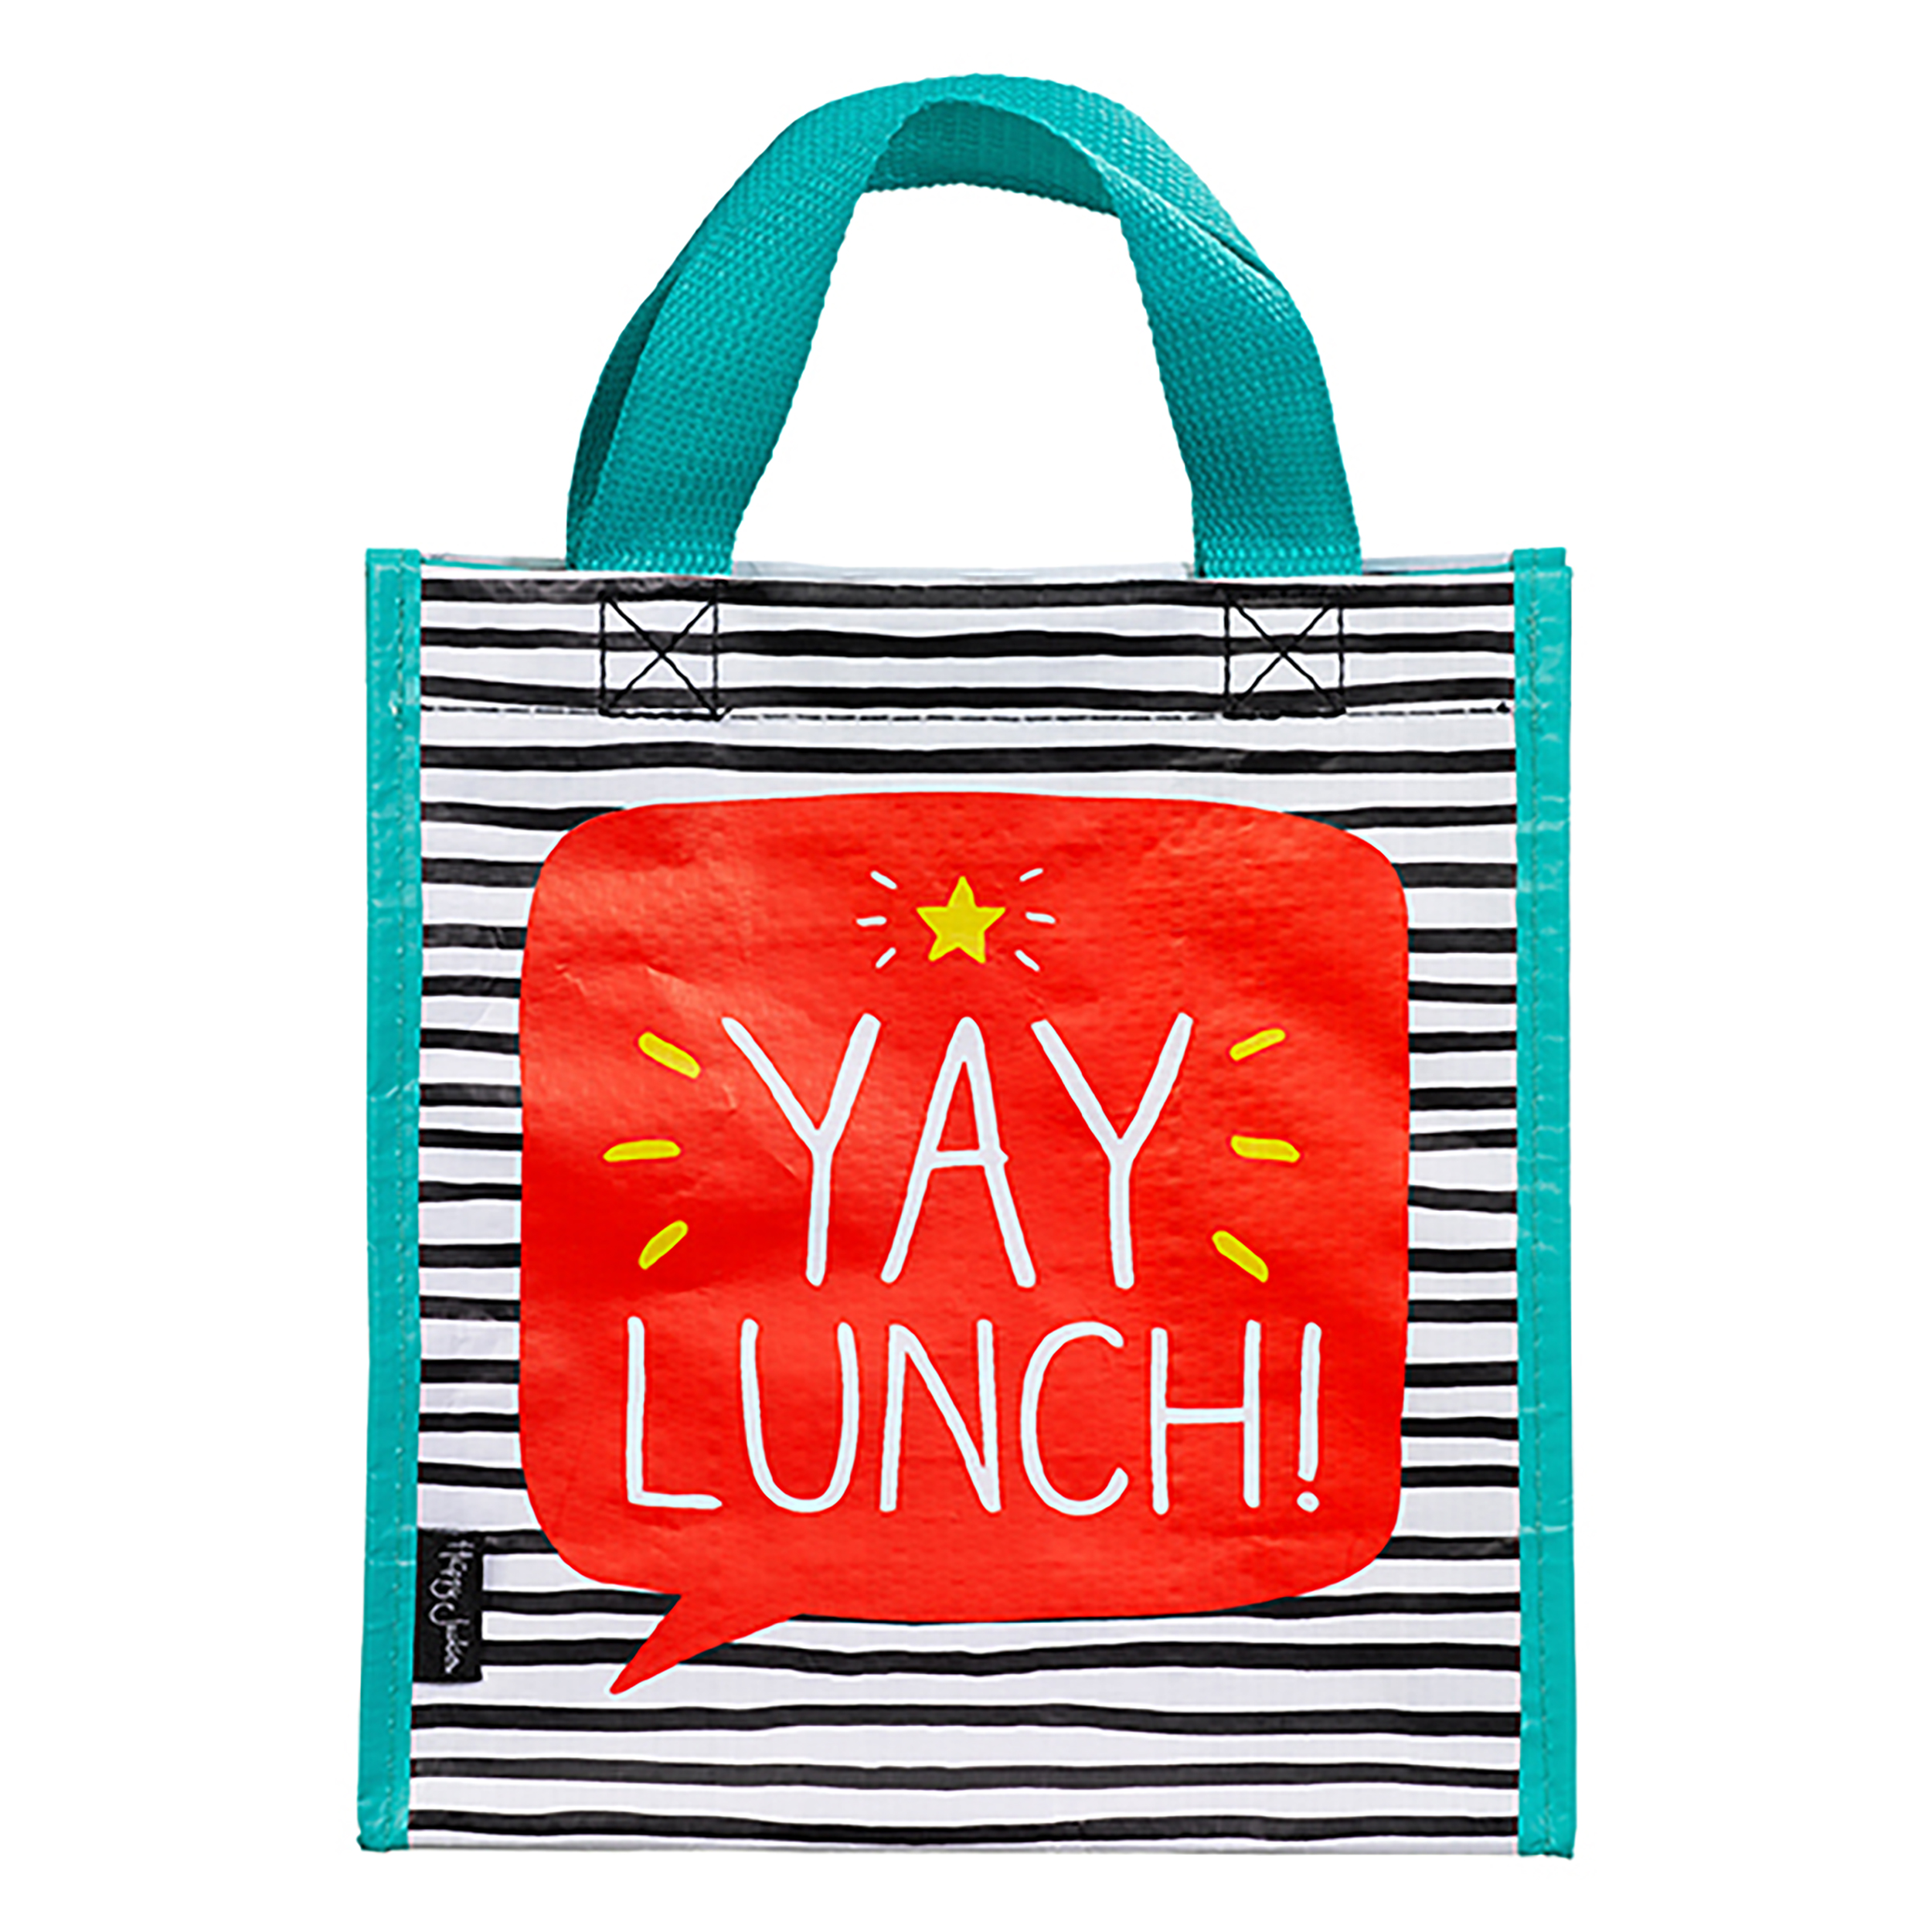 Yay Lunch' Tote Bag